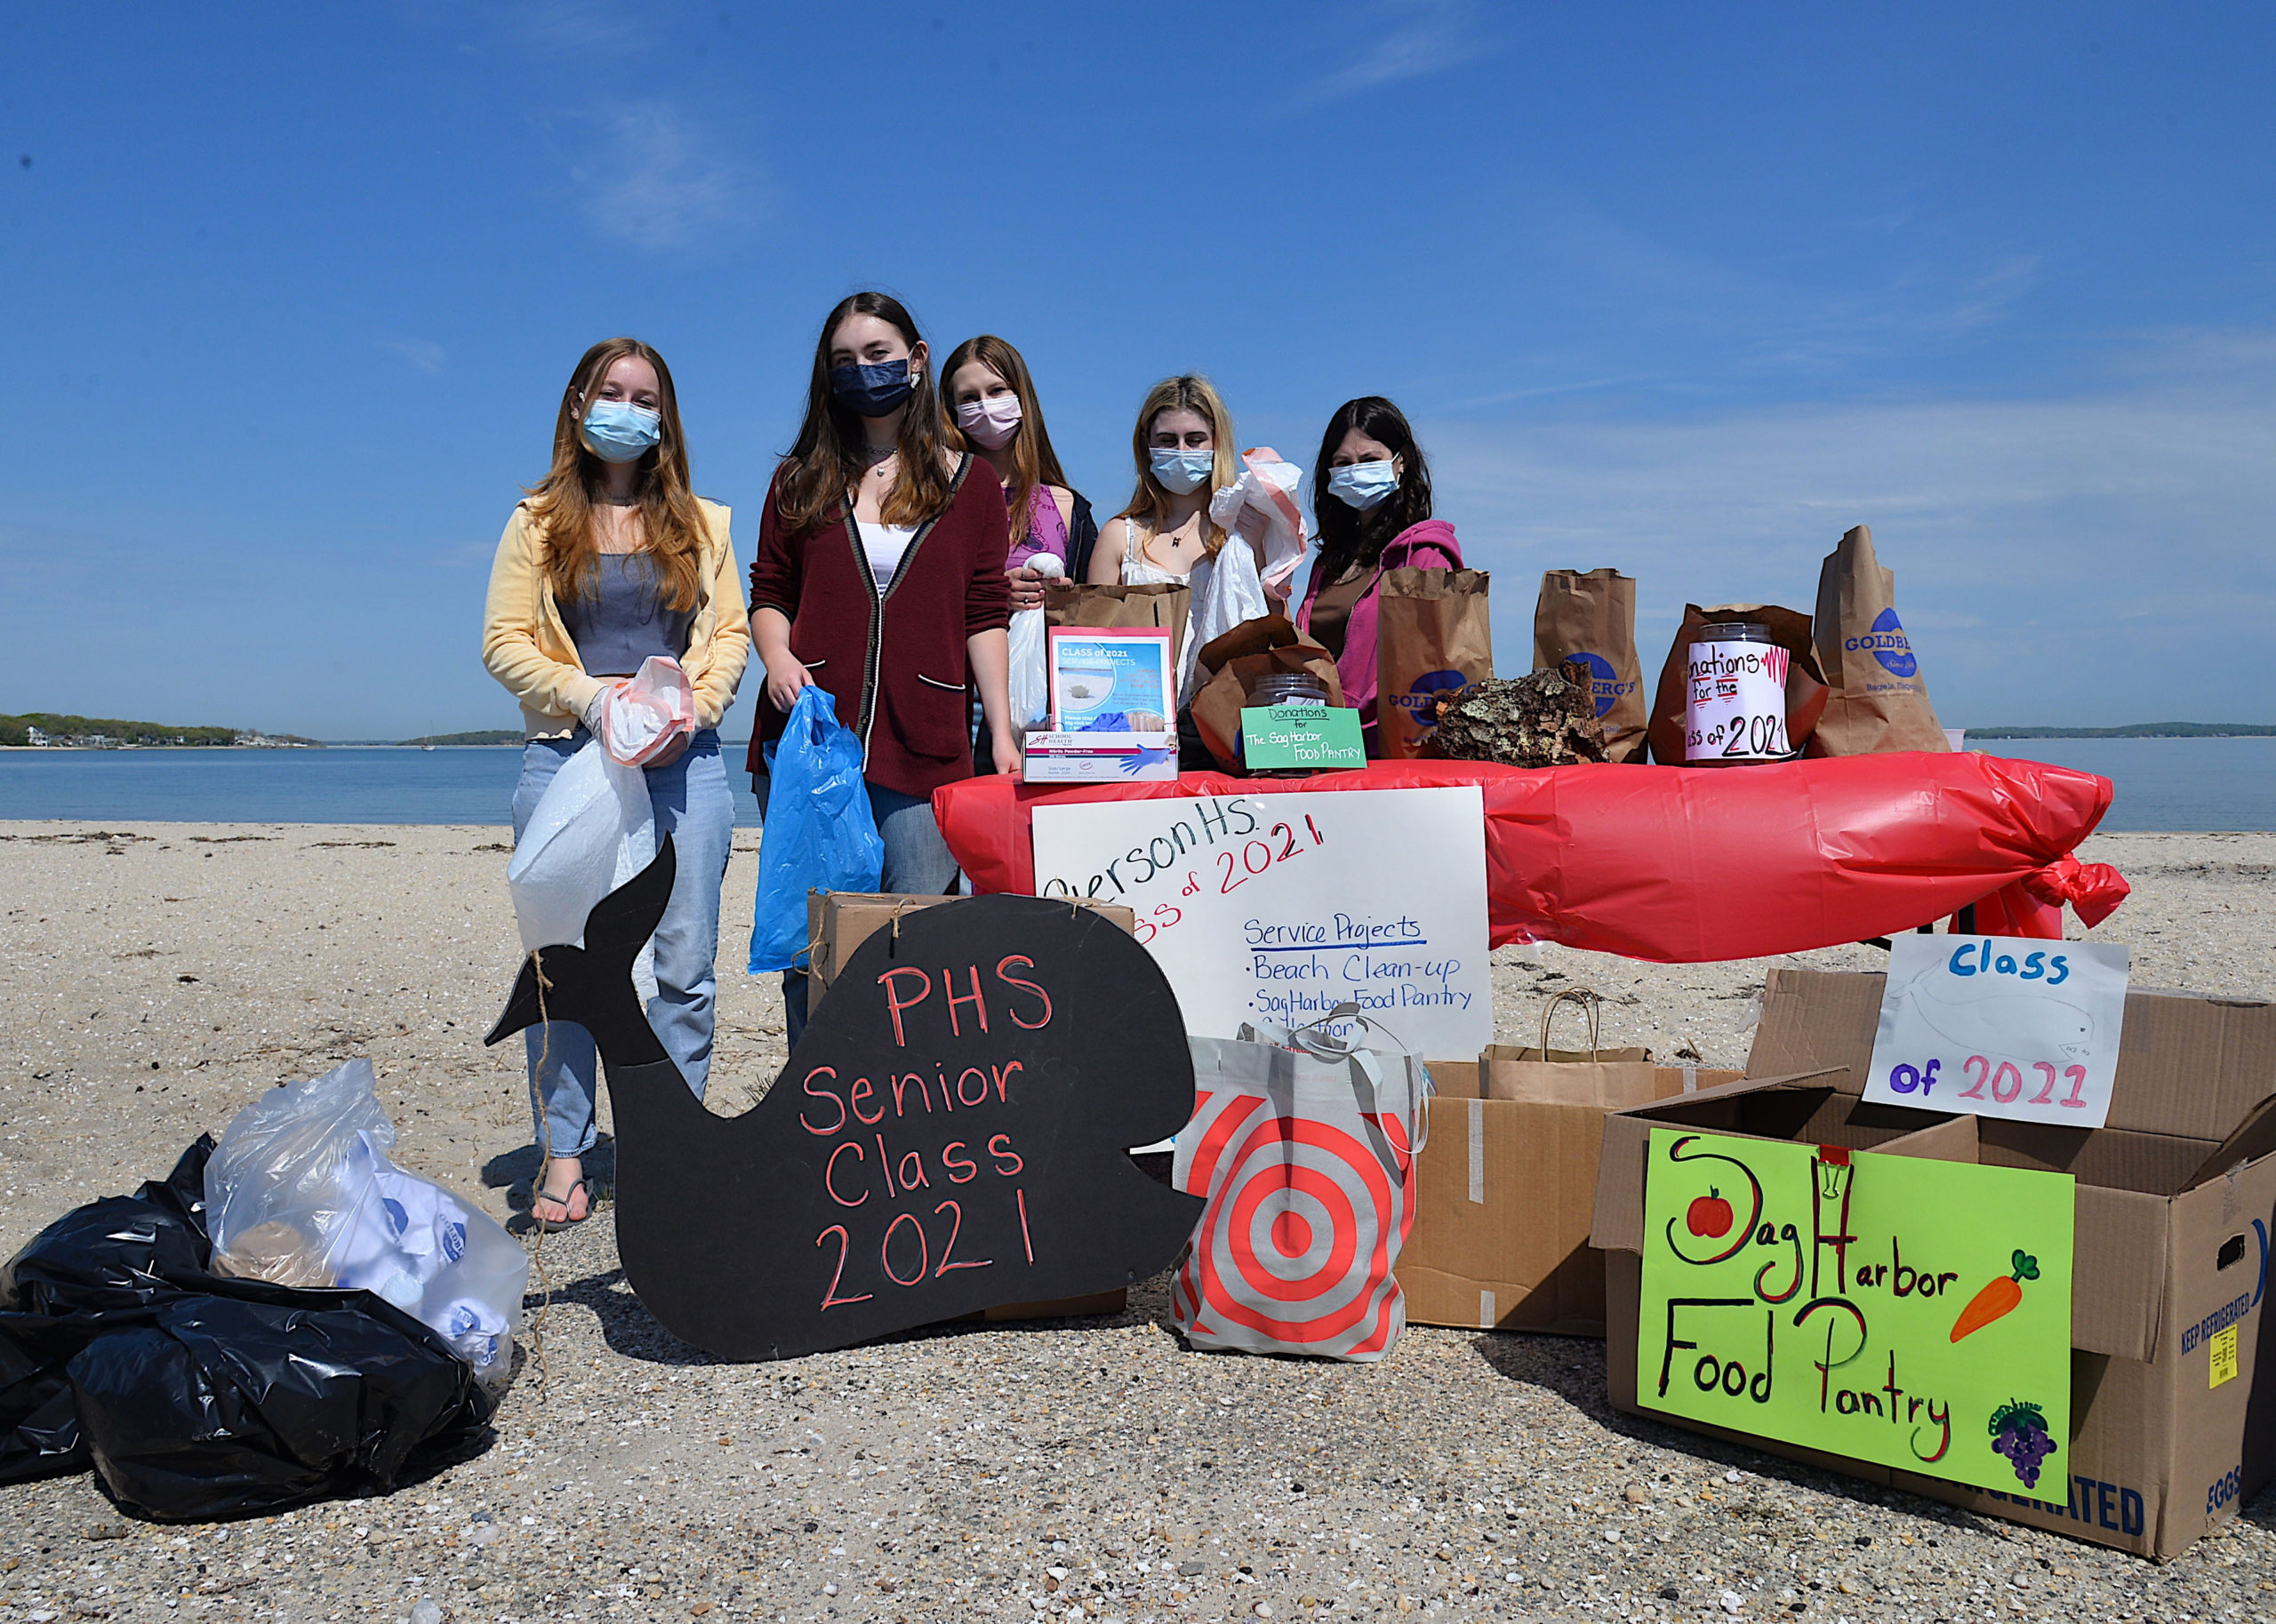 Pierson seniors Francesca Vitale, Jamie Farnam, Tess Norris, Sarah Van Houten and Emily Brownstein at Long Beach on Sunday morning for beach clean up and food pantry donations.  KYRIL BROMLEY